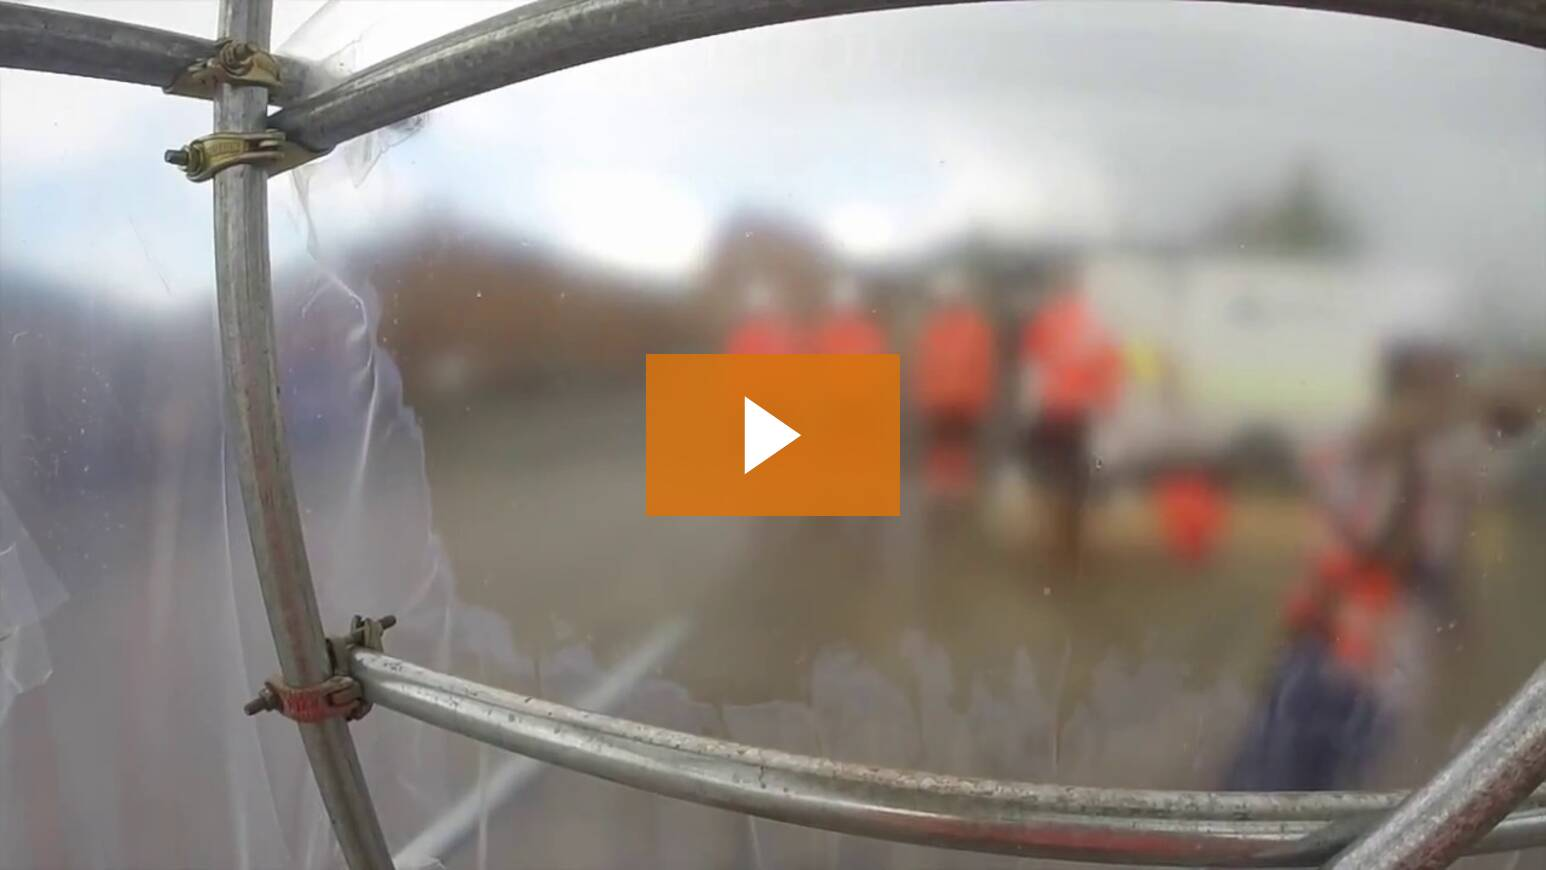 How To Use Clear Shrink Wrap Film For Scaffold Encapsulation & Containment